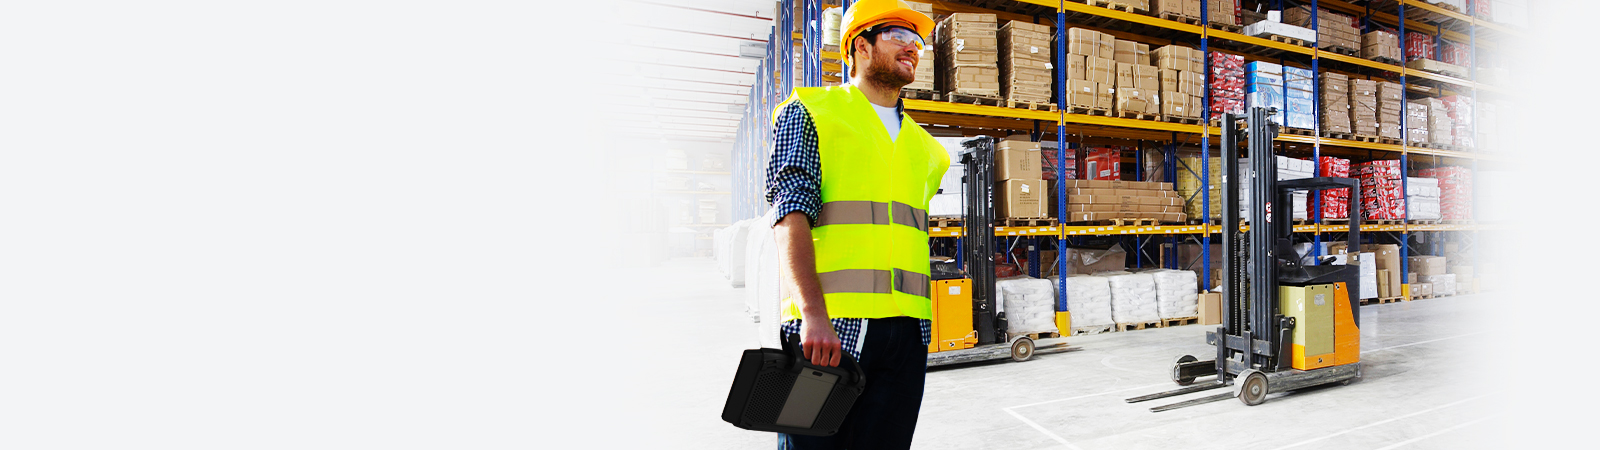 Tablet applications in logistics and warehousing solutions